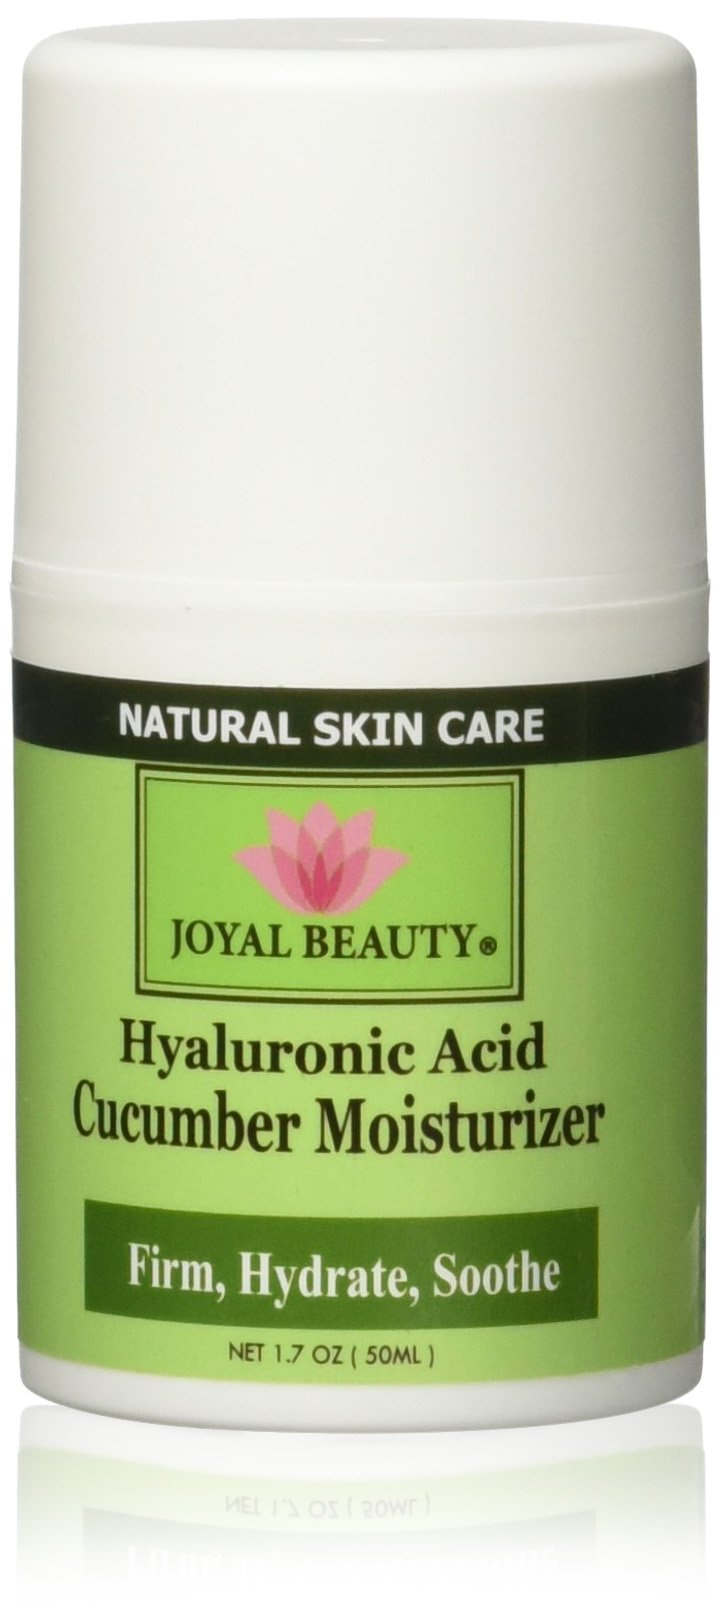 JJoyal Beauty Best Hyaluronic Acid Moisturizer for Skin Face Eyes. Natural Organic Anti Aging Firming Face Cream with Fresh Cooling Soothing Cucumber Extract for Men and Women